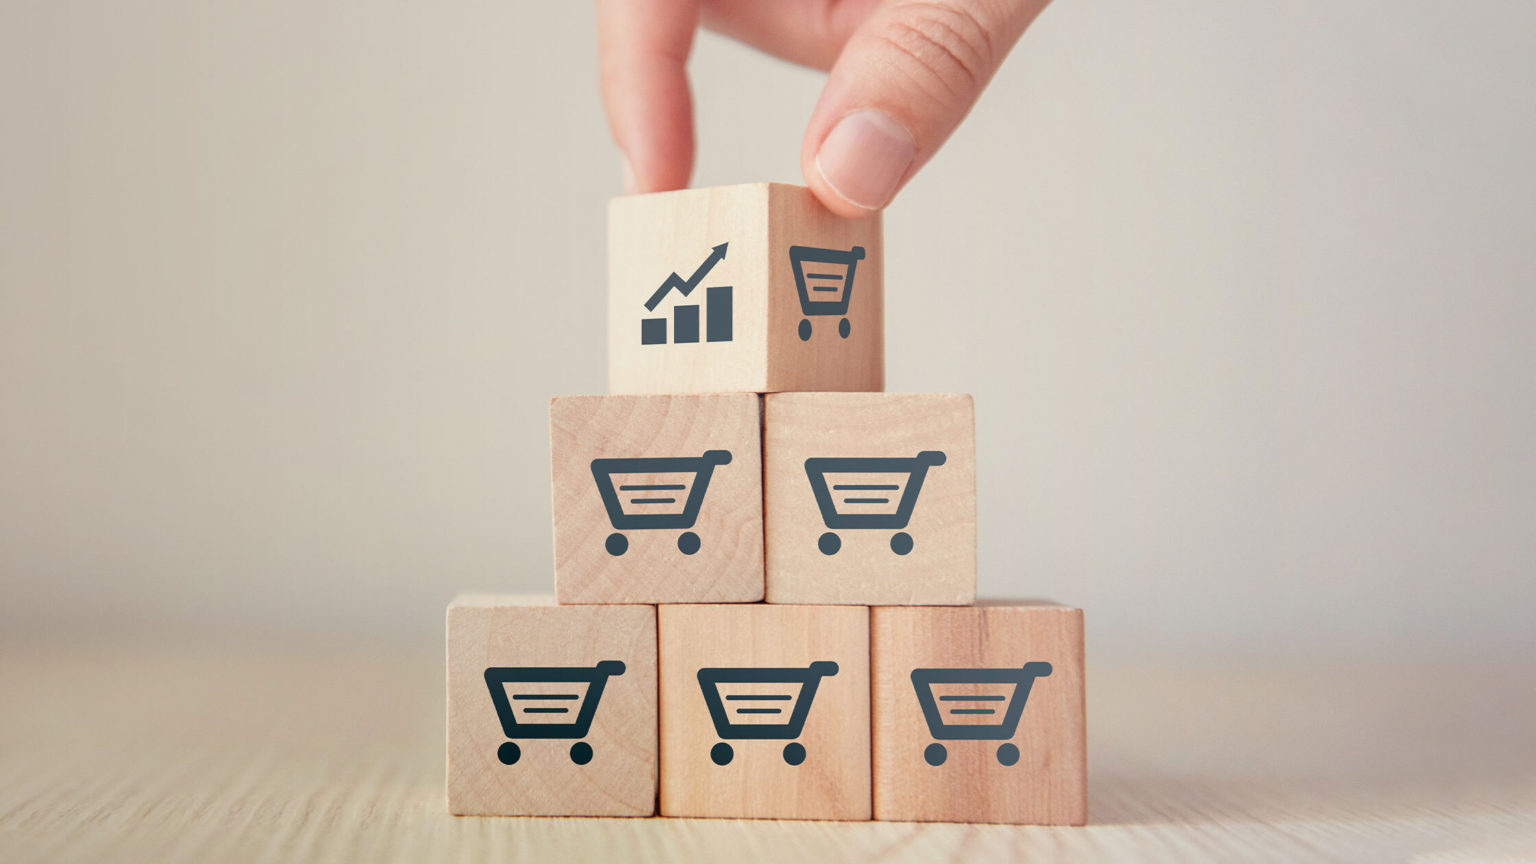 person stacking up blocks representing the 10 amazon fba tips